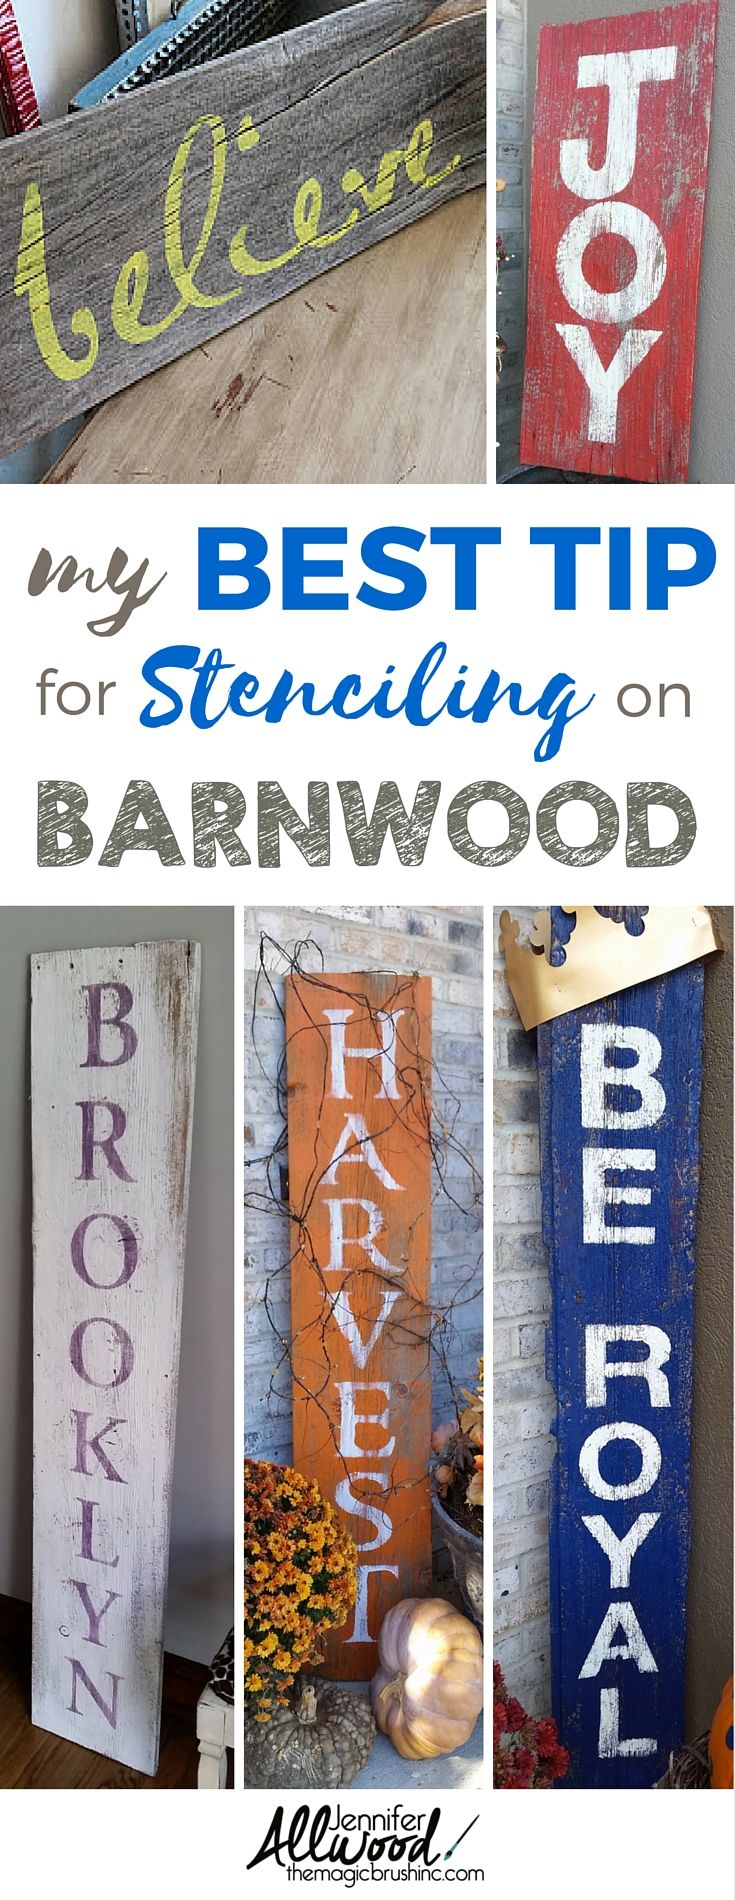 My best tip for stenciling on barnwood